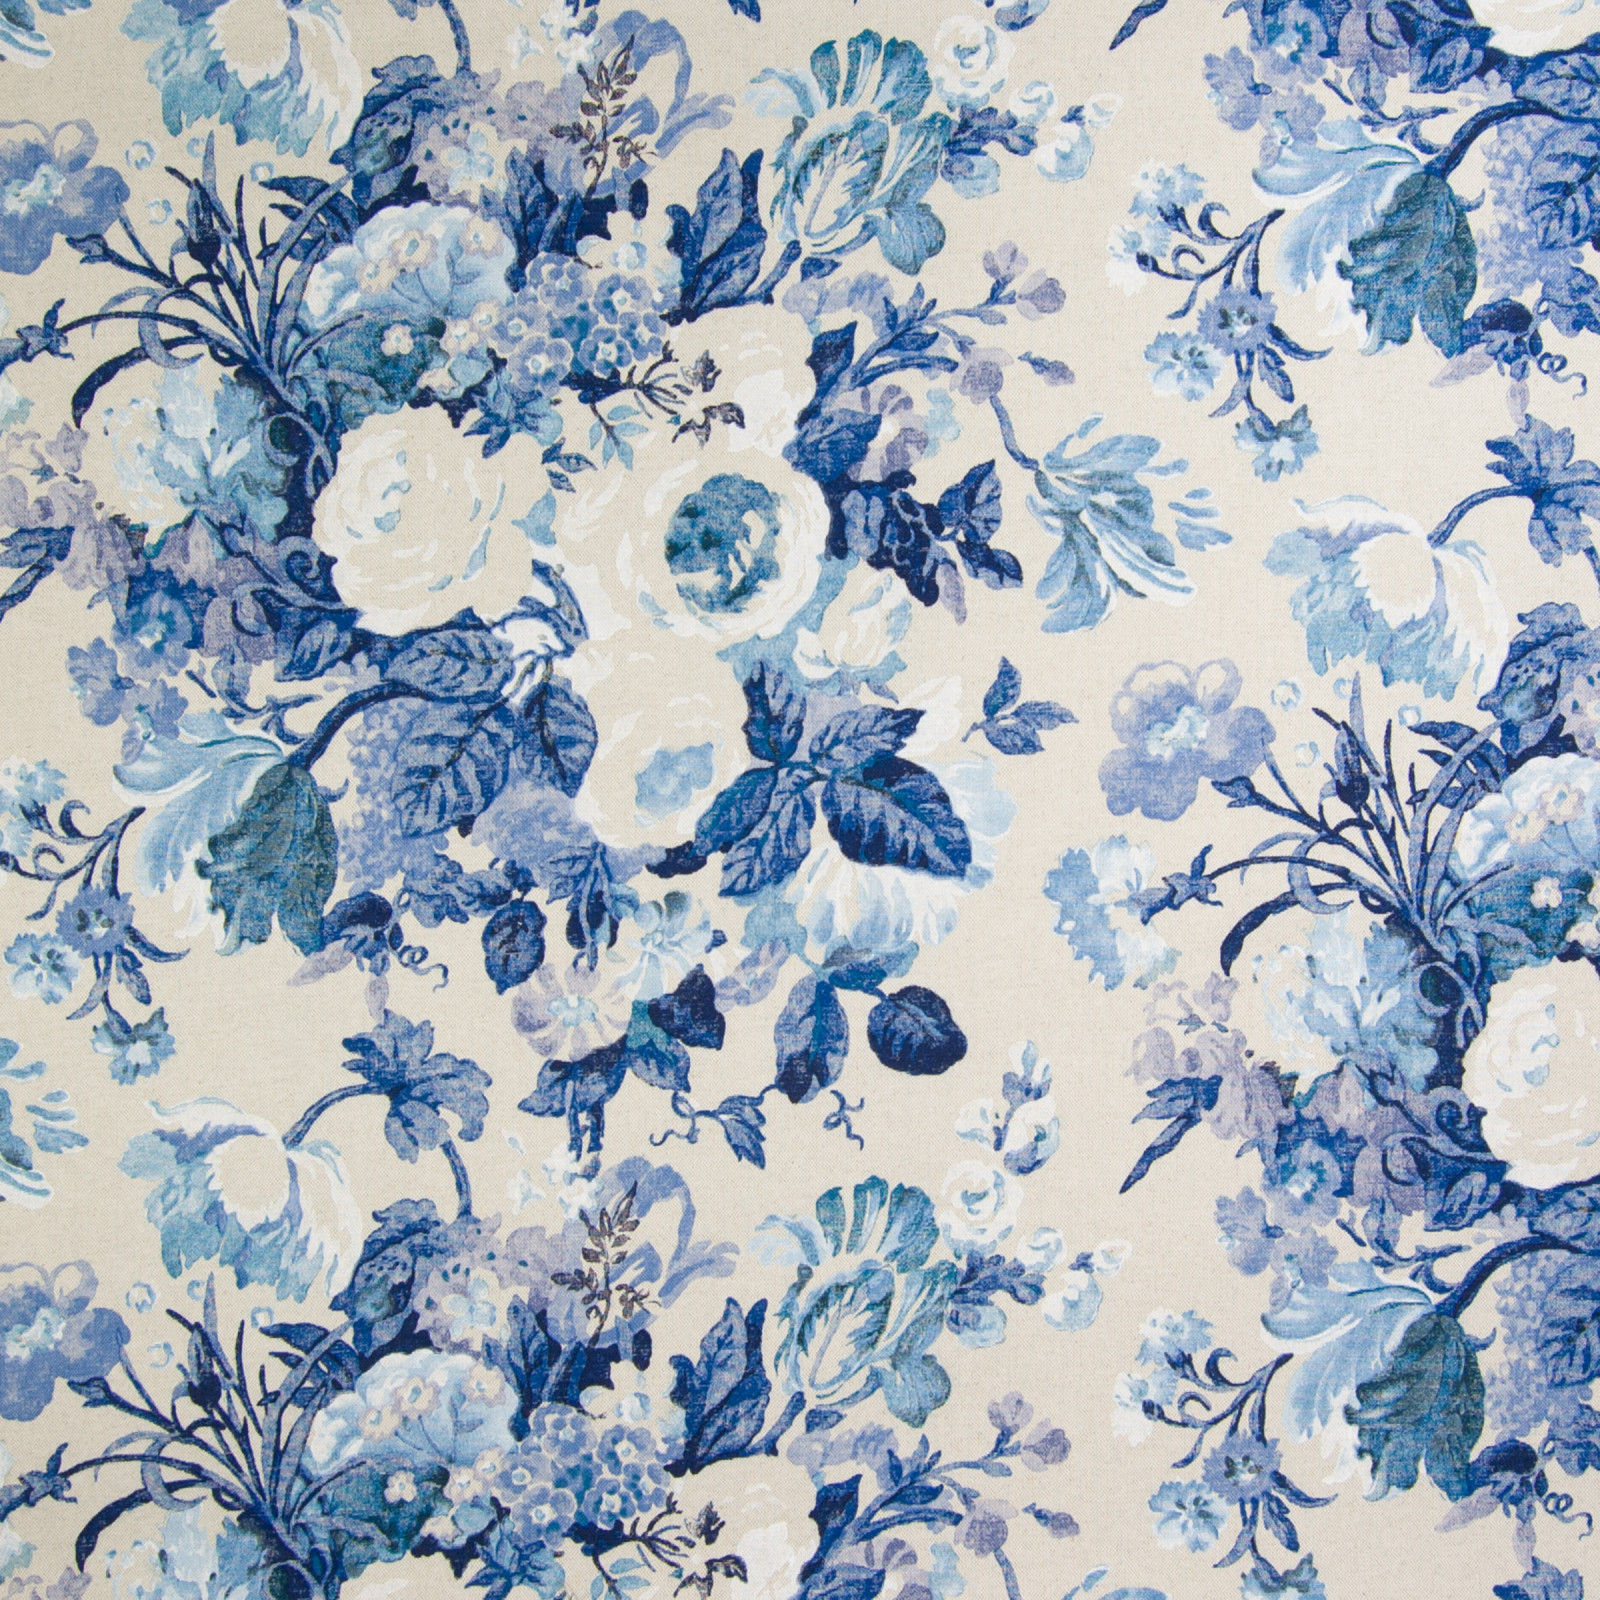 Cobalt Blue Floral Print Upholstery Fabric